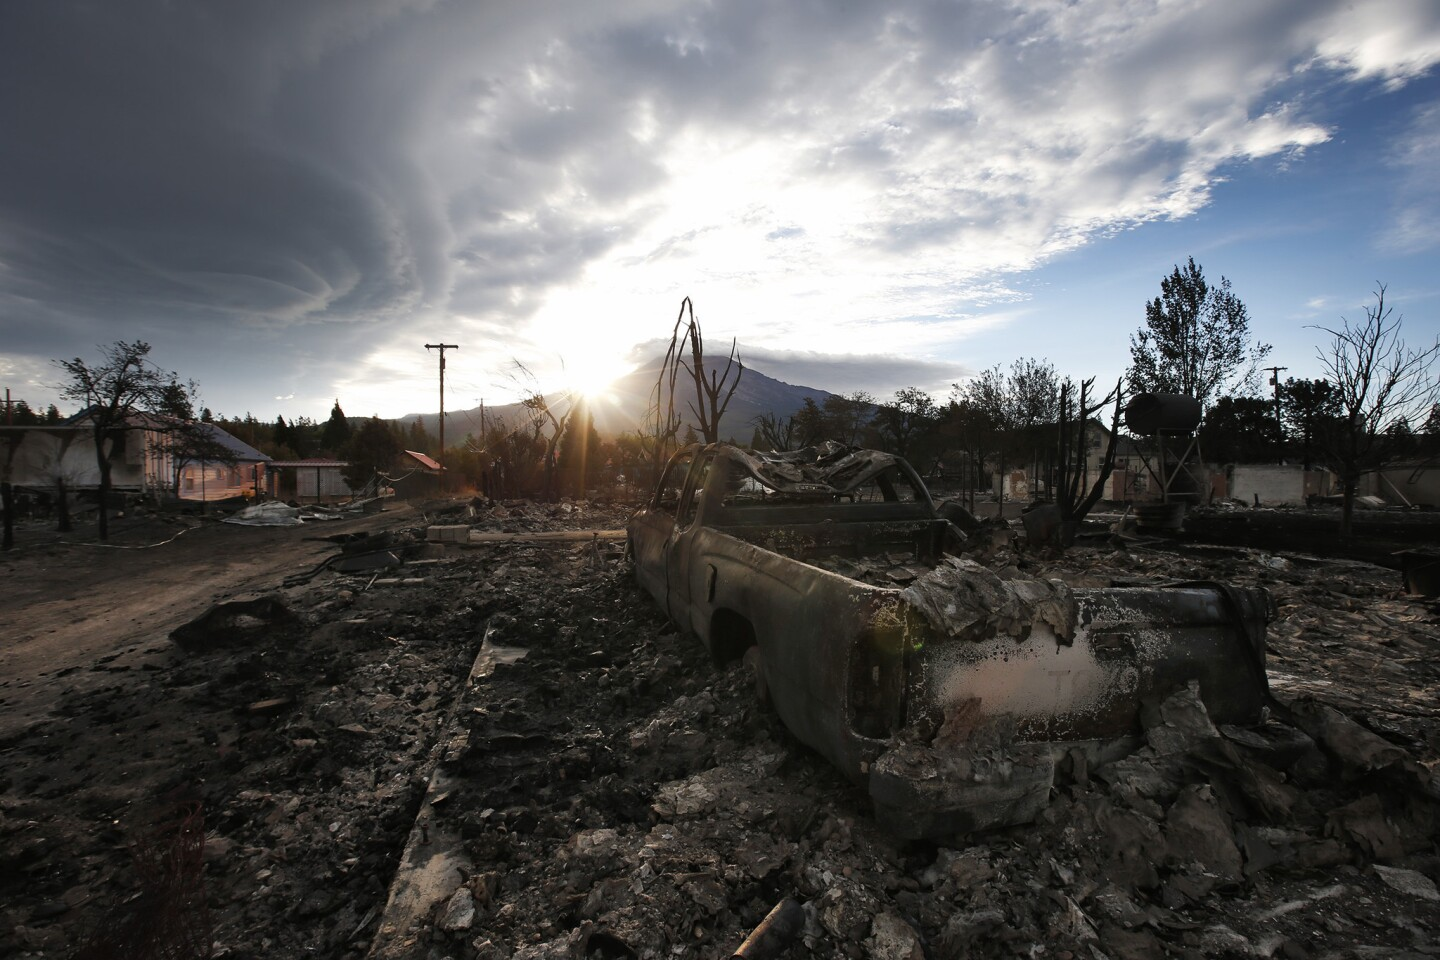 The sun rises behind Mt. Shasta overlooking the devastated Angel Valley neighborhood two days after the Boles Fire, pushed by heavy winds devastated this town near the California and Oregon border.